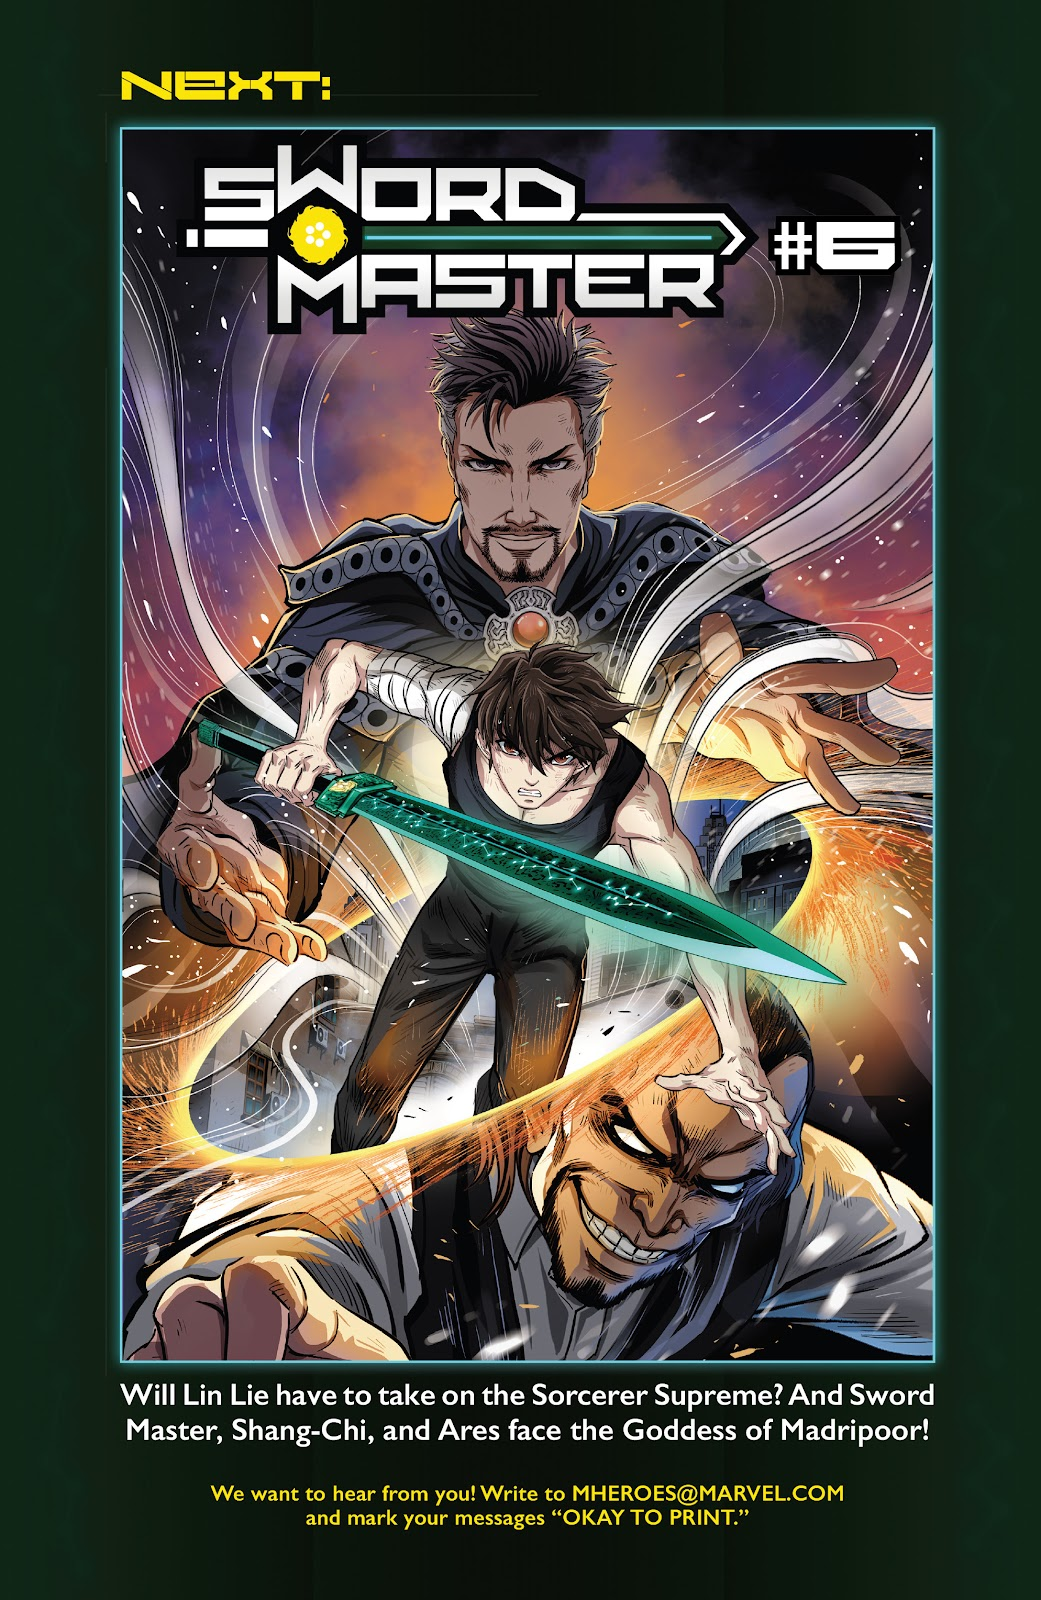 Read online Sword Master comic -  Issue #5 - 33